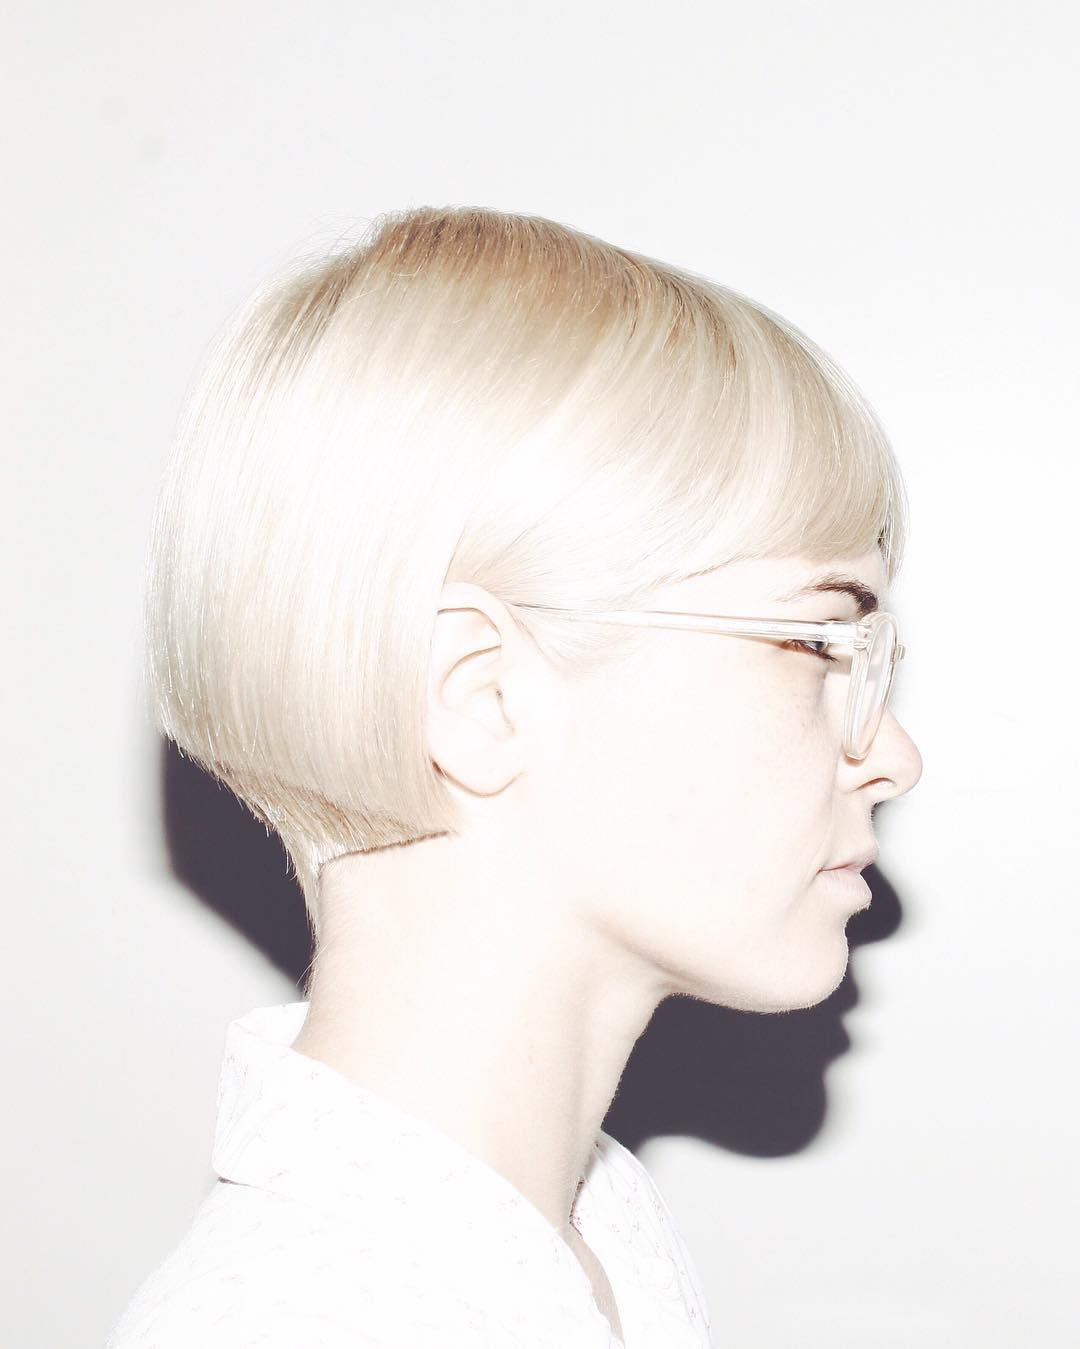 blond bob haircut idea for girls | Short Hairstyles for Women ...